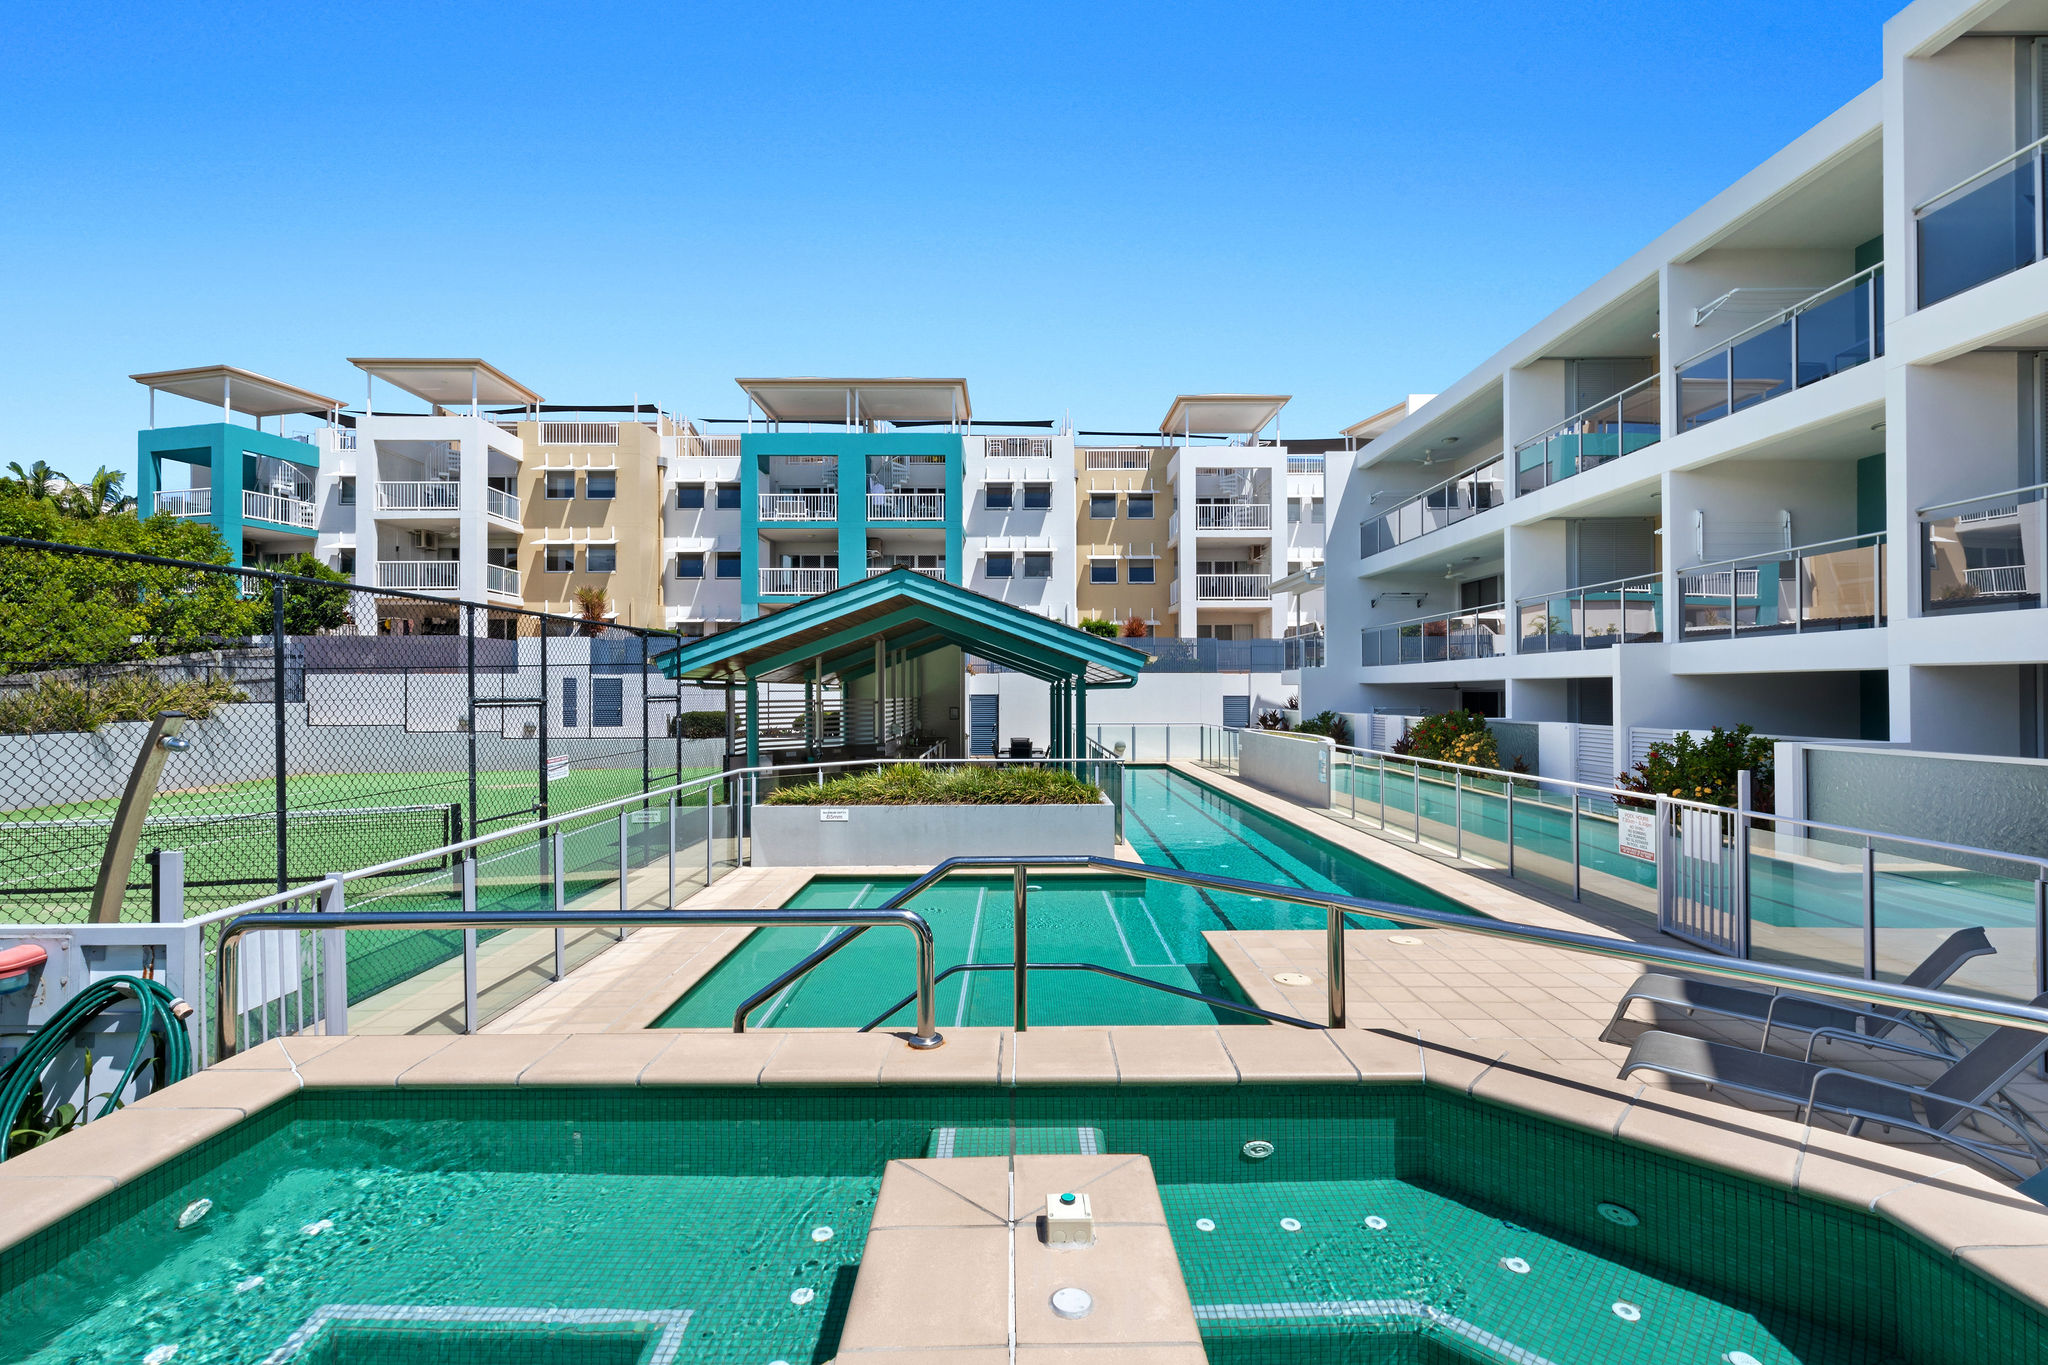 Apartment 3BR Coolum Beach  photo 24018827